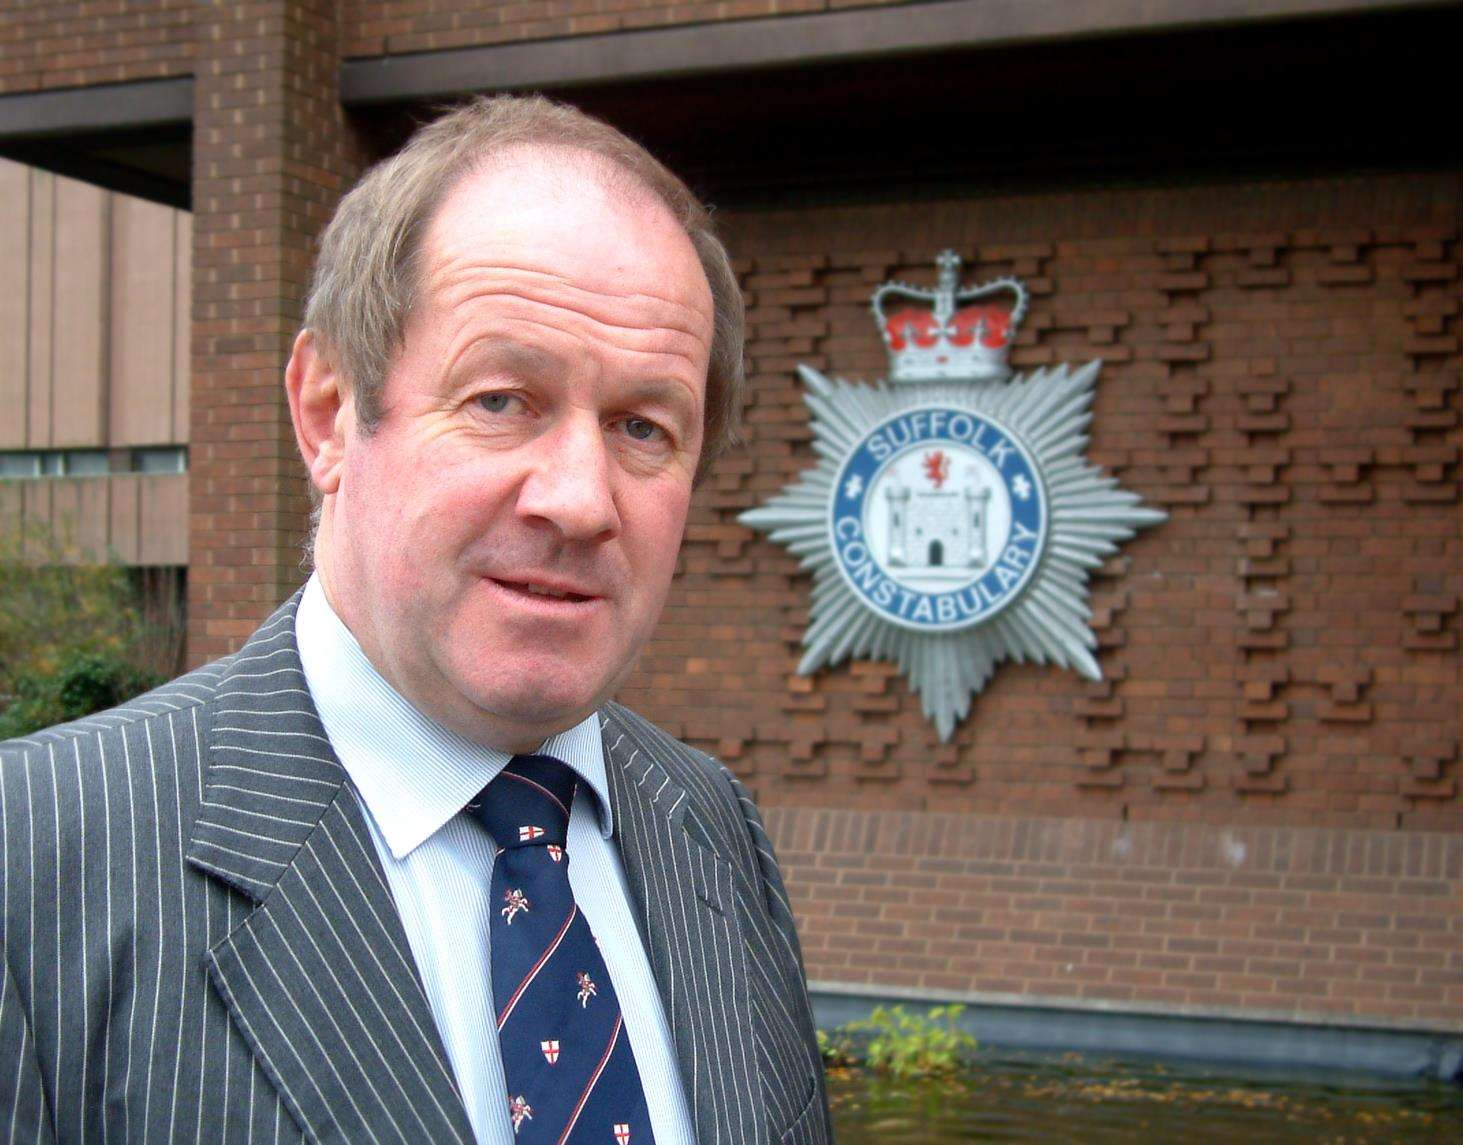 Tim Passmore who is the Police Commissioner for Suffolk. (6332321)